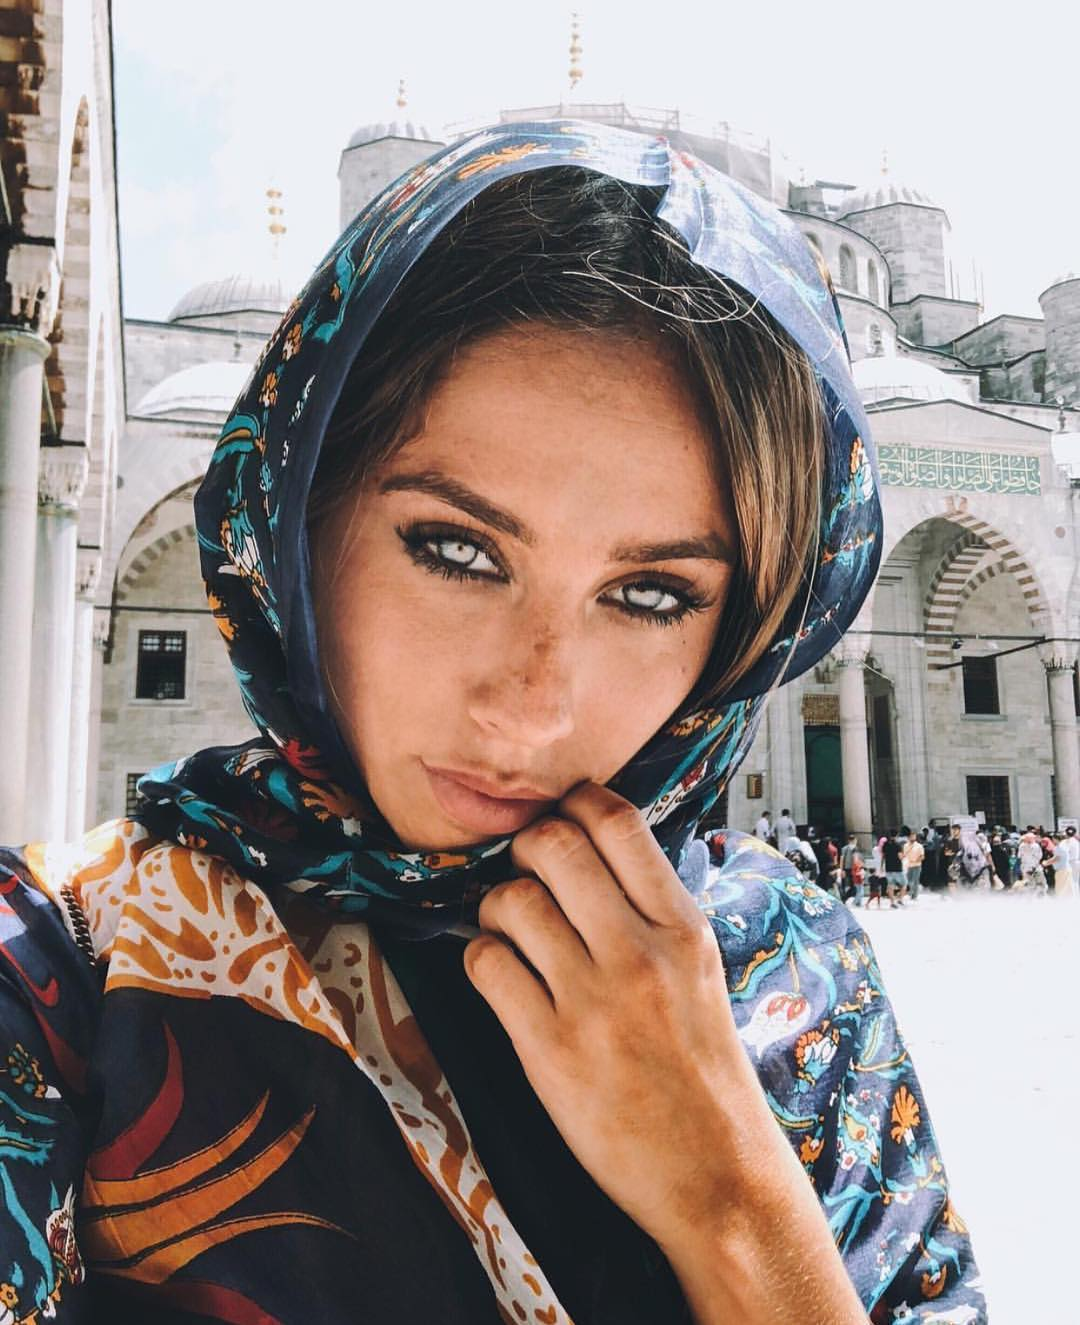 Blue Printed Headscarf For Summer Vacation 2020